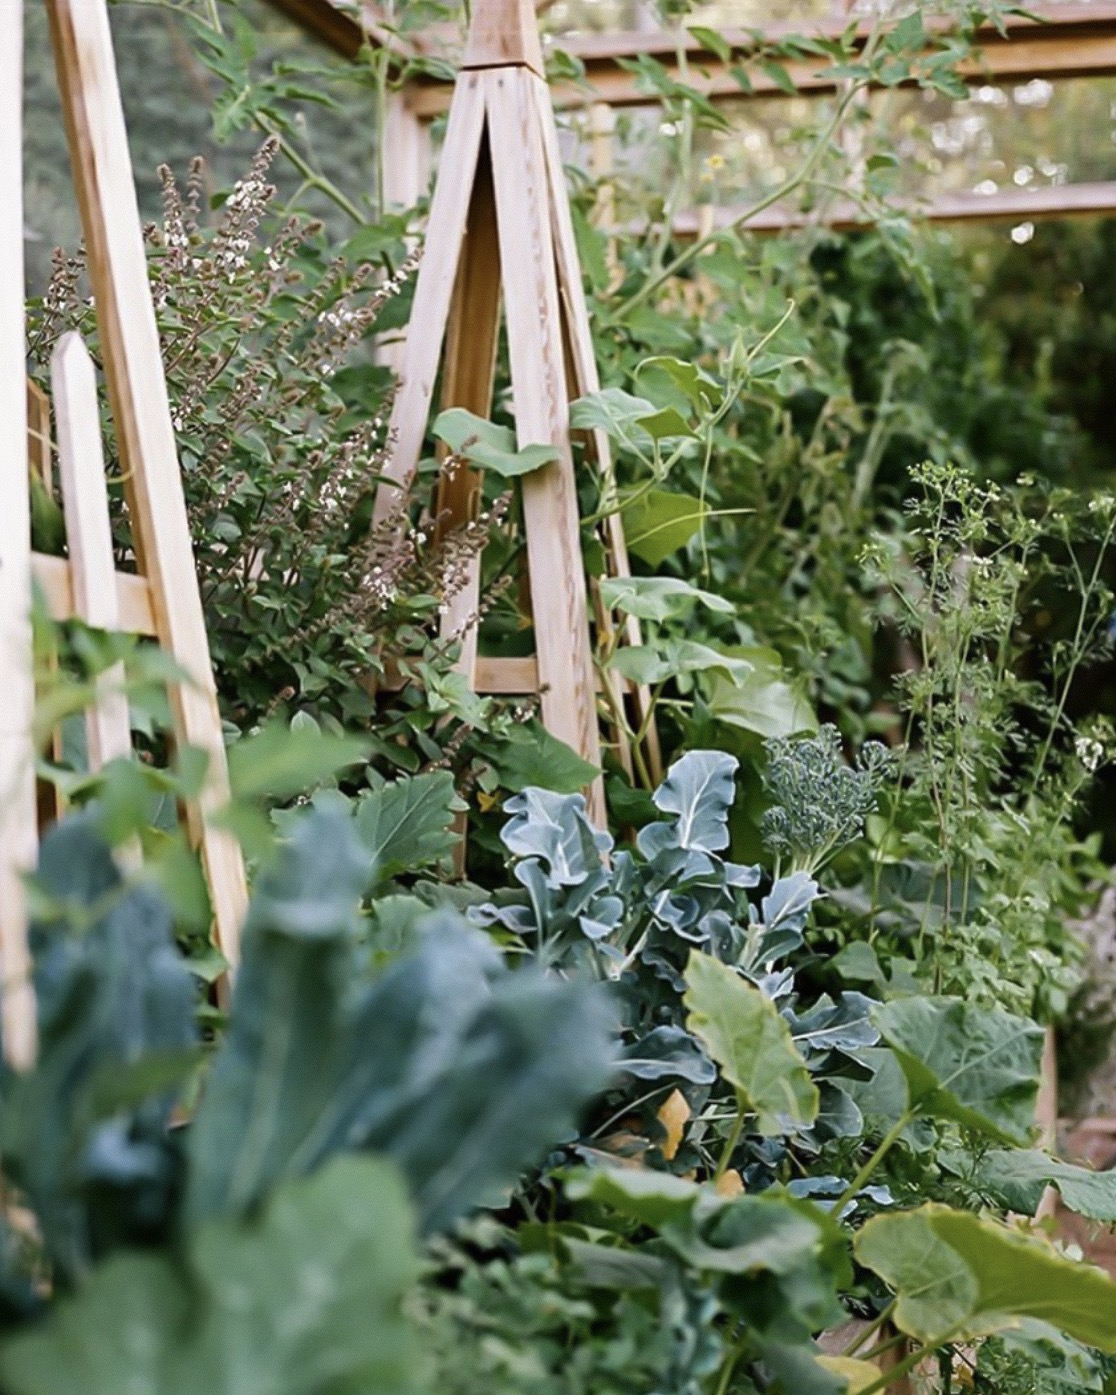 A GARDEN CAN BE ANYWHERE: CREATING BEAUTIFUL AND BOUNTIFUL EDIBLE GARDENS |  In this book Edible Gardens LA's Lauri Kranz shares tips, tricks, and insights into the building, maintenance and joy of growing food for yourself and your family. A must buy | Image Brian Ferry, via Edible Gardens LA    LINK HERE >>>